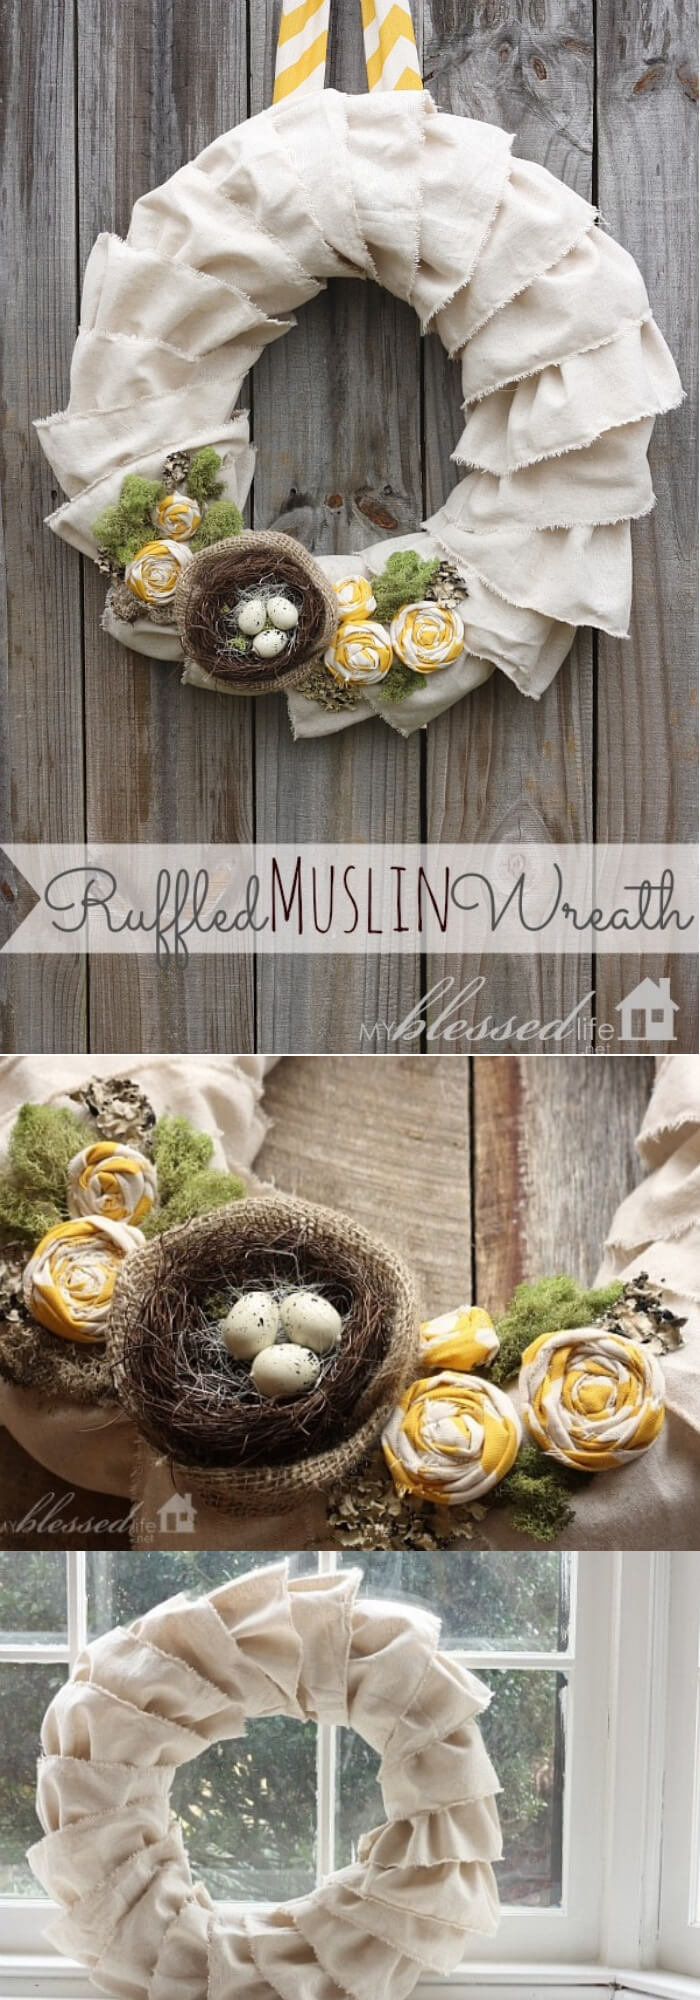 Easy and Simple DIY Spring Wreath Ideas | Ruffled Muslin Wreath